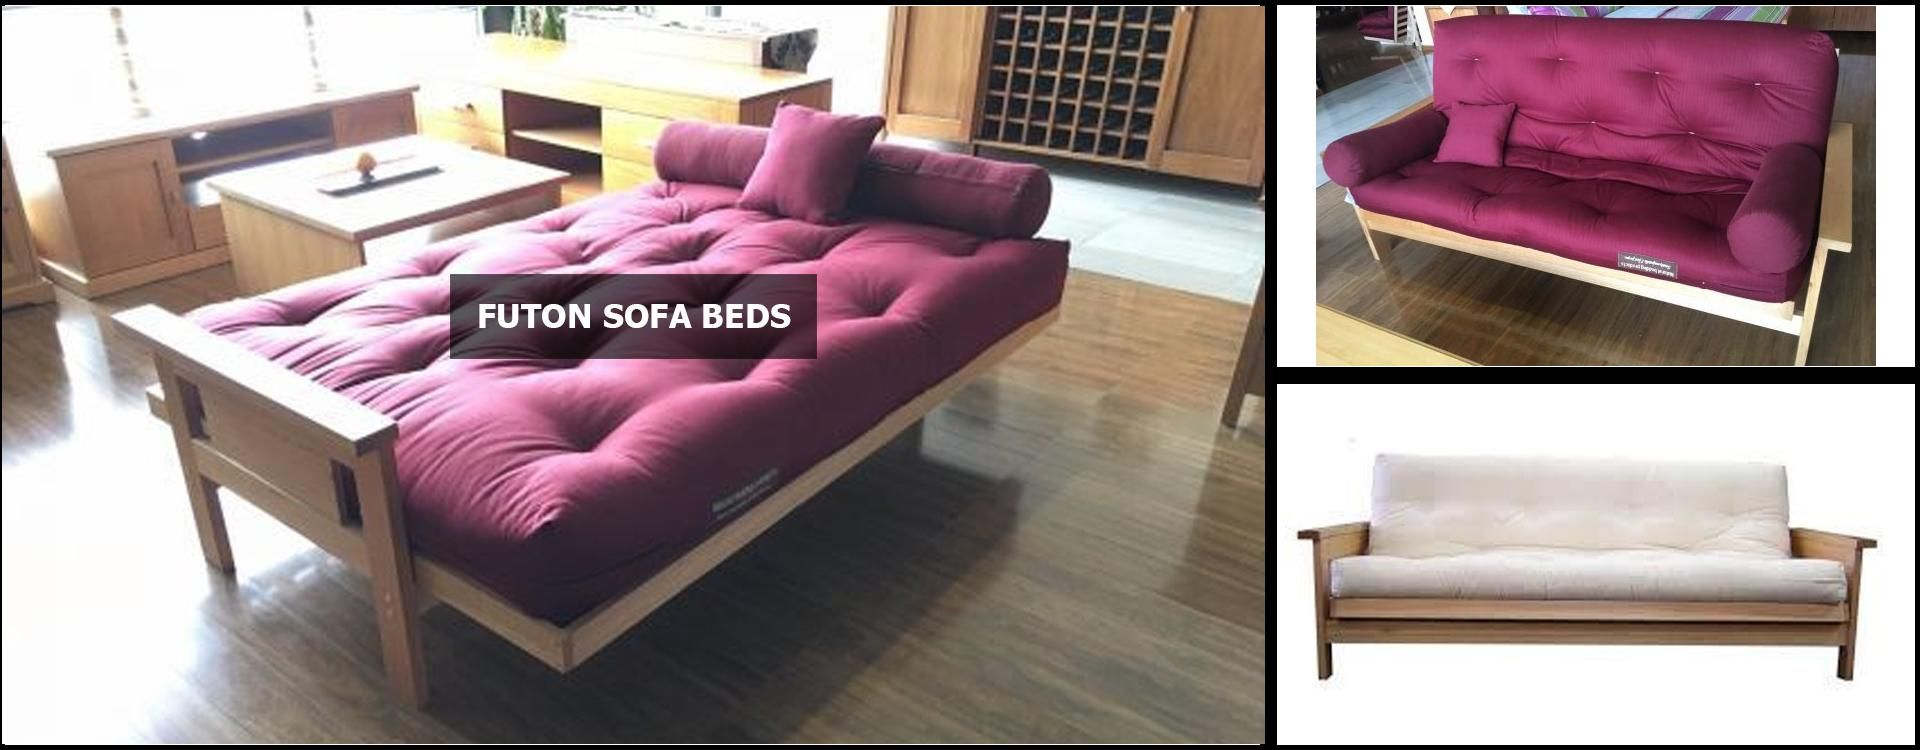 Back To The Futon Specializes In Manufacture Of Melbourne We Base Our Trade On Offering Helpful Friendly Professional Service And Product